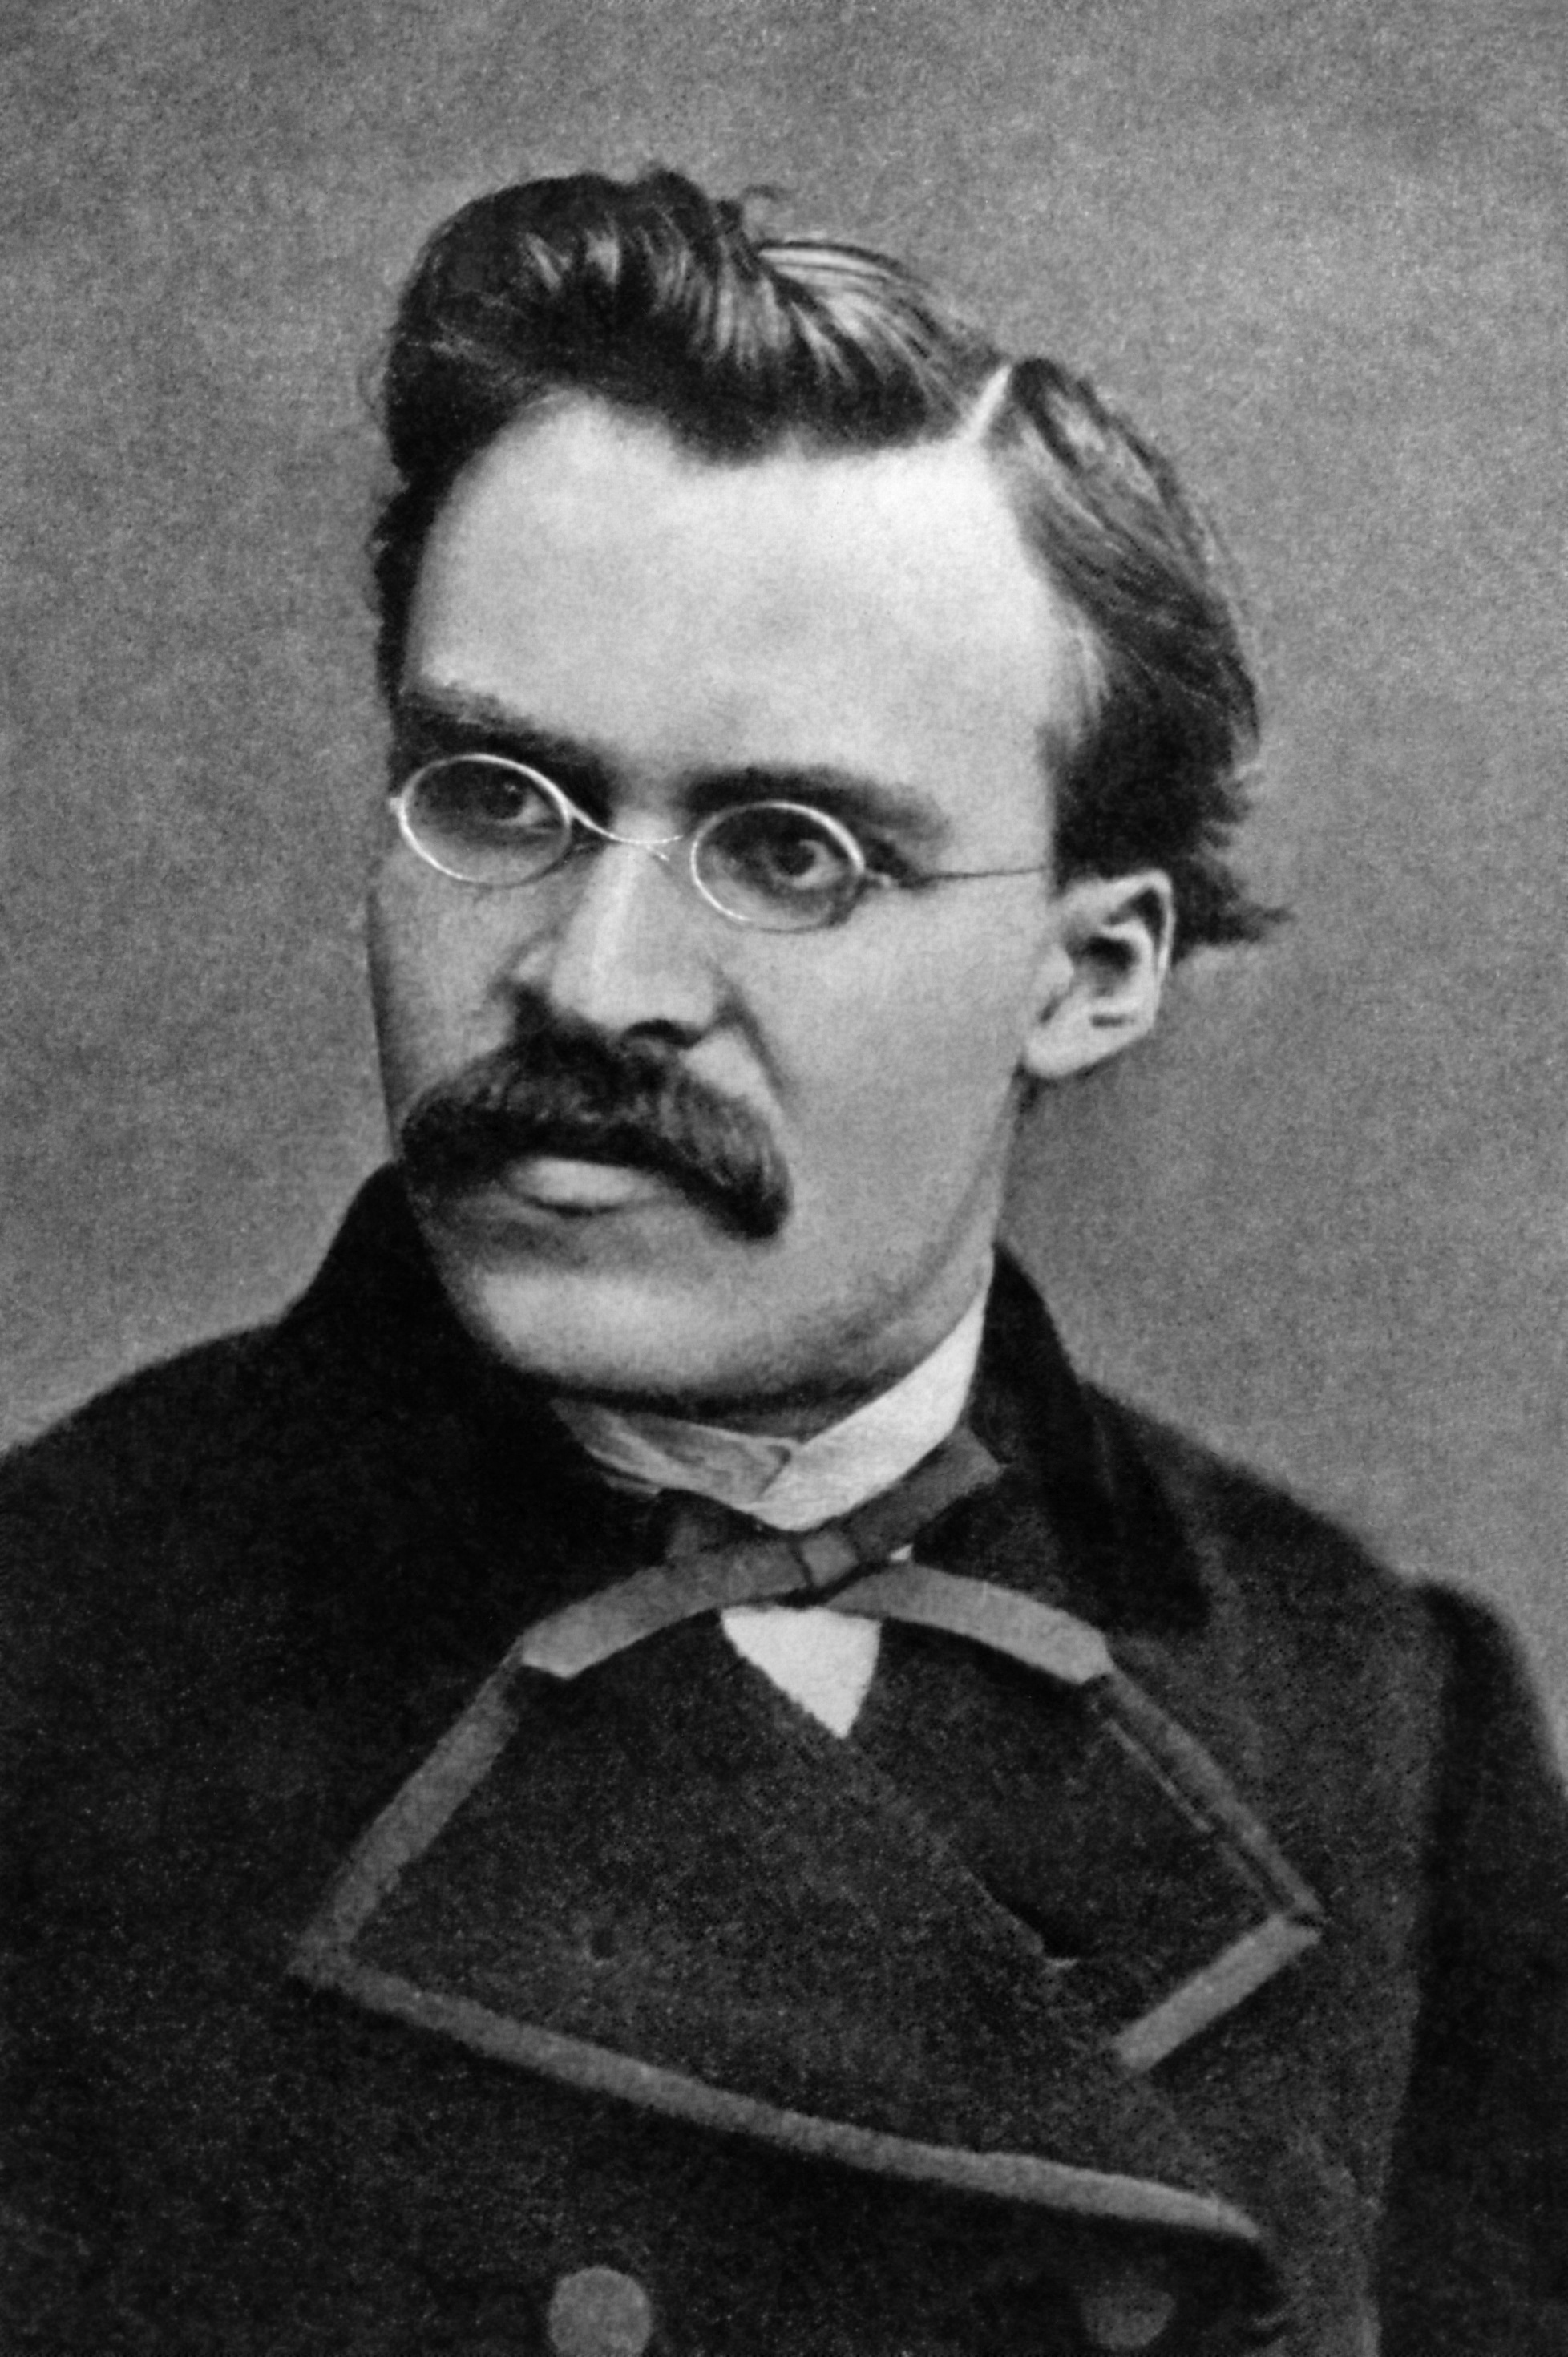 an introduction to the career and philosophy by friedrich nietzsche Friedrich nietzsche nietzsche: an introduction to the understanding of his nietzsche, friedrich: moral and political philosophy | relativism.